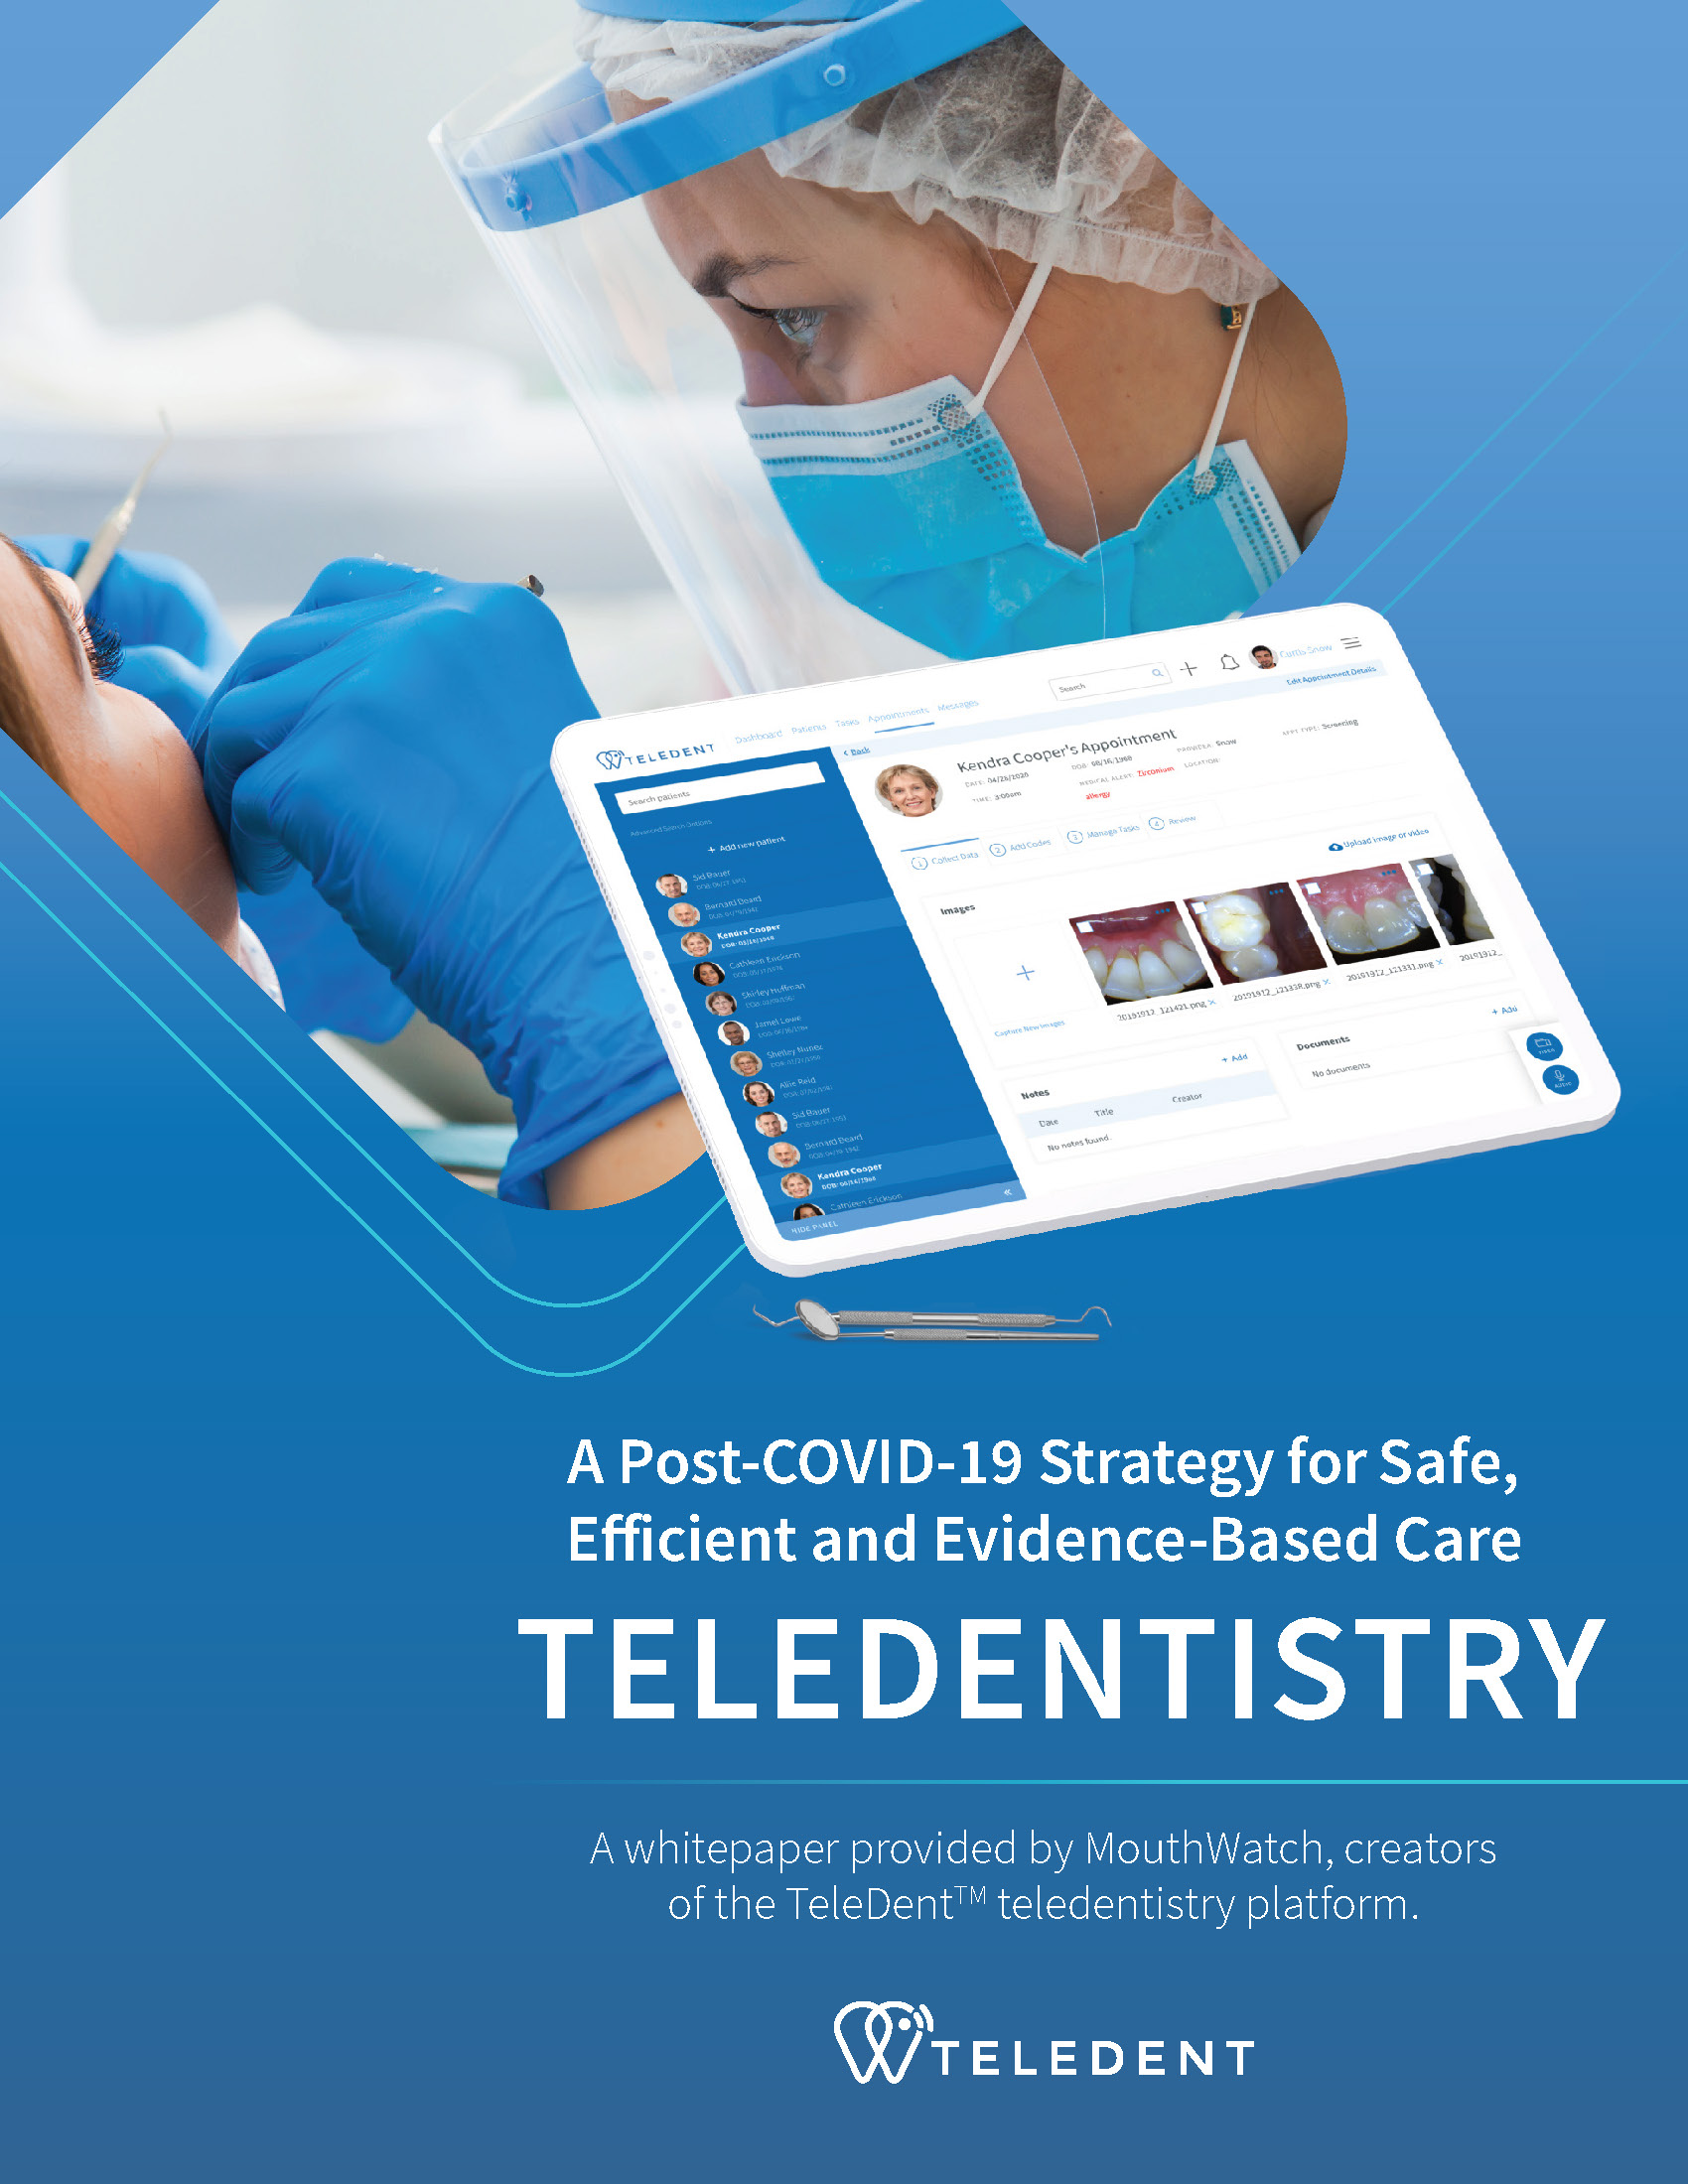 Teledentistry - A post-COVID strategy | MouthWatch Whitepaper COVER